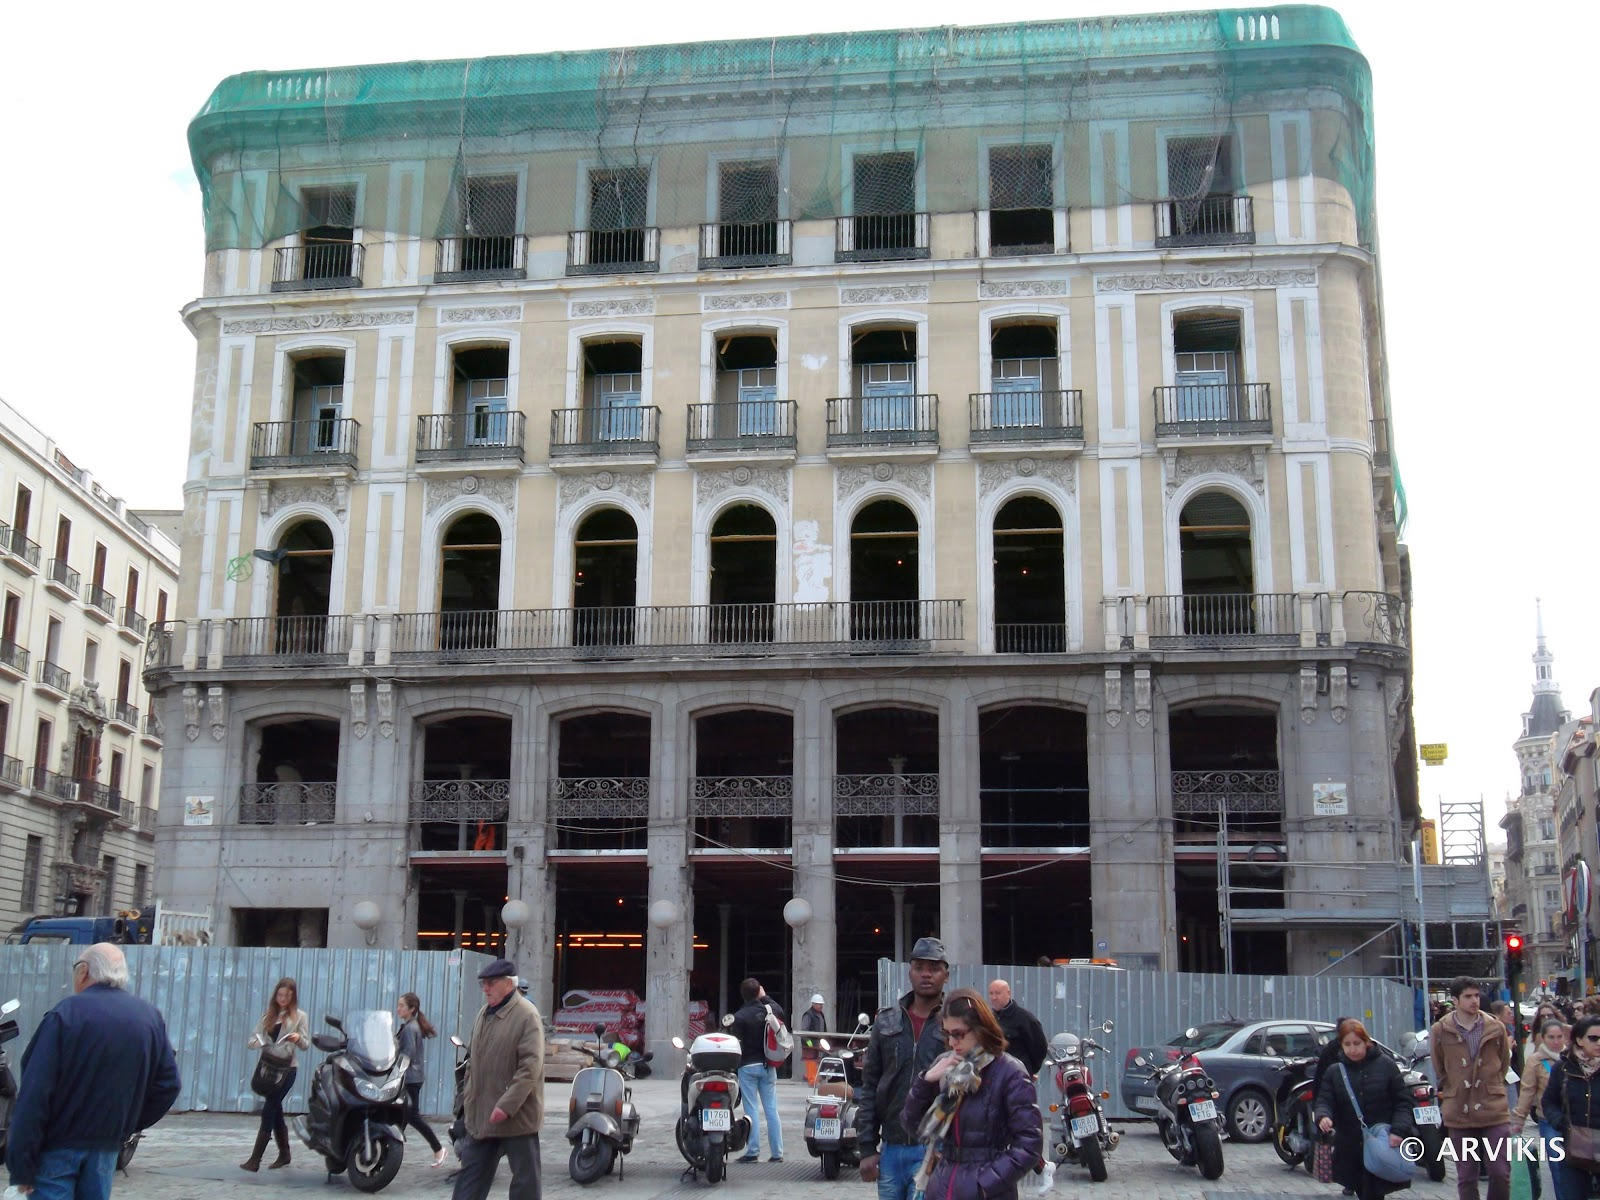 Arvikis madrid el edificio tio pepe antiguo for Edificio puerta del sol quito